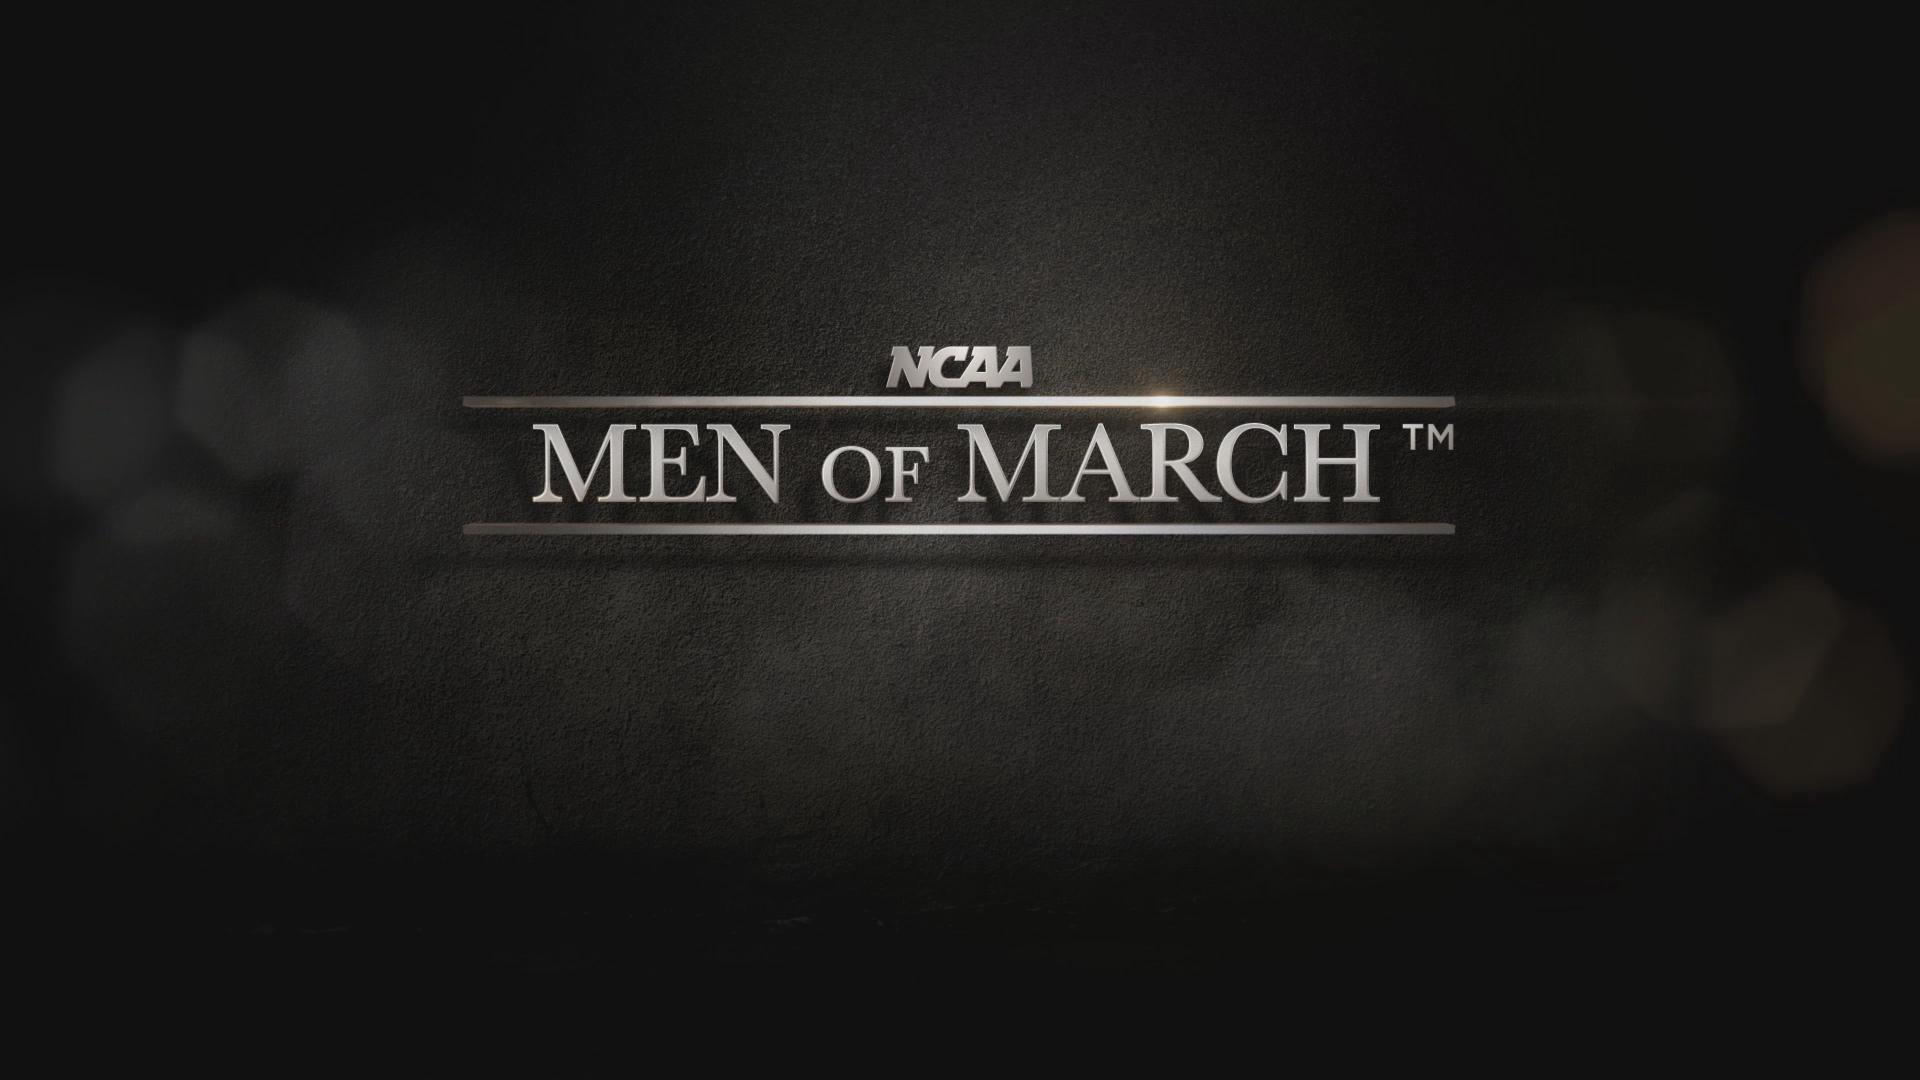 CBS   Men of March is an all-access documentary show blending behind-the-scenes with in-depth at home interviews providing a unique look at the philosophy, life and style of the best coaches in college basketball.